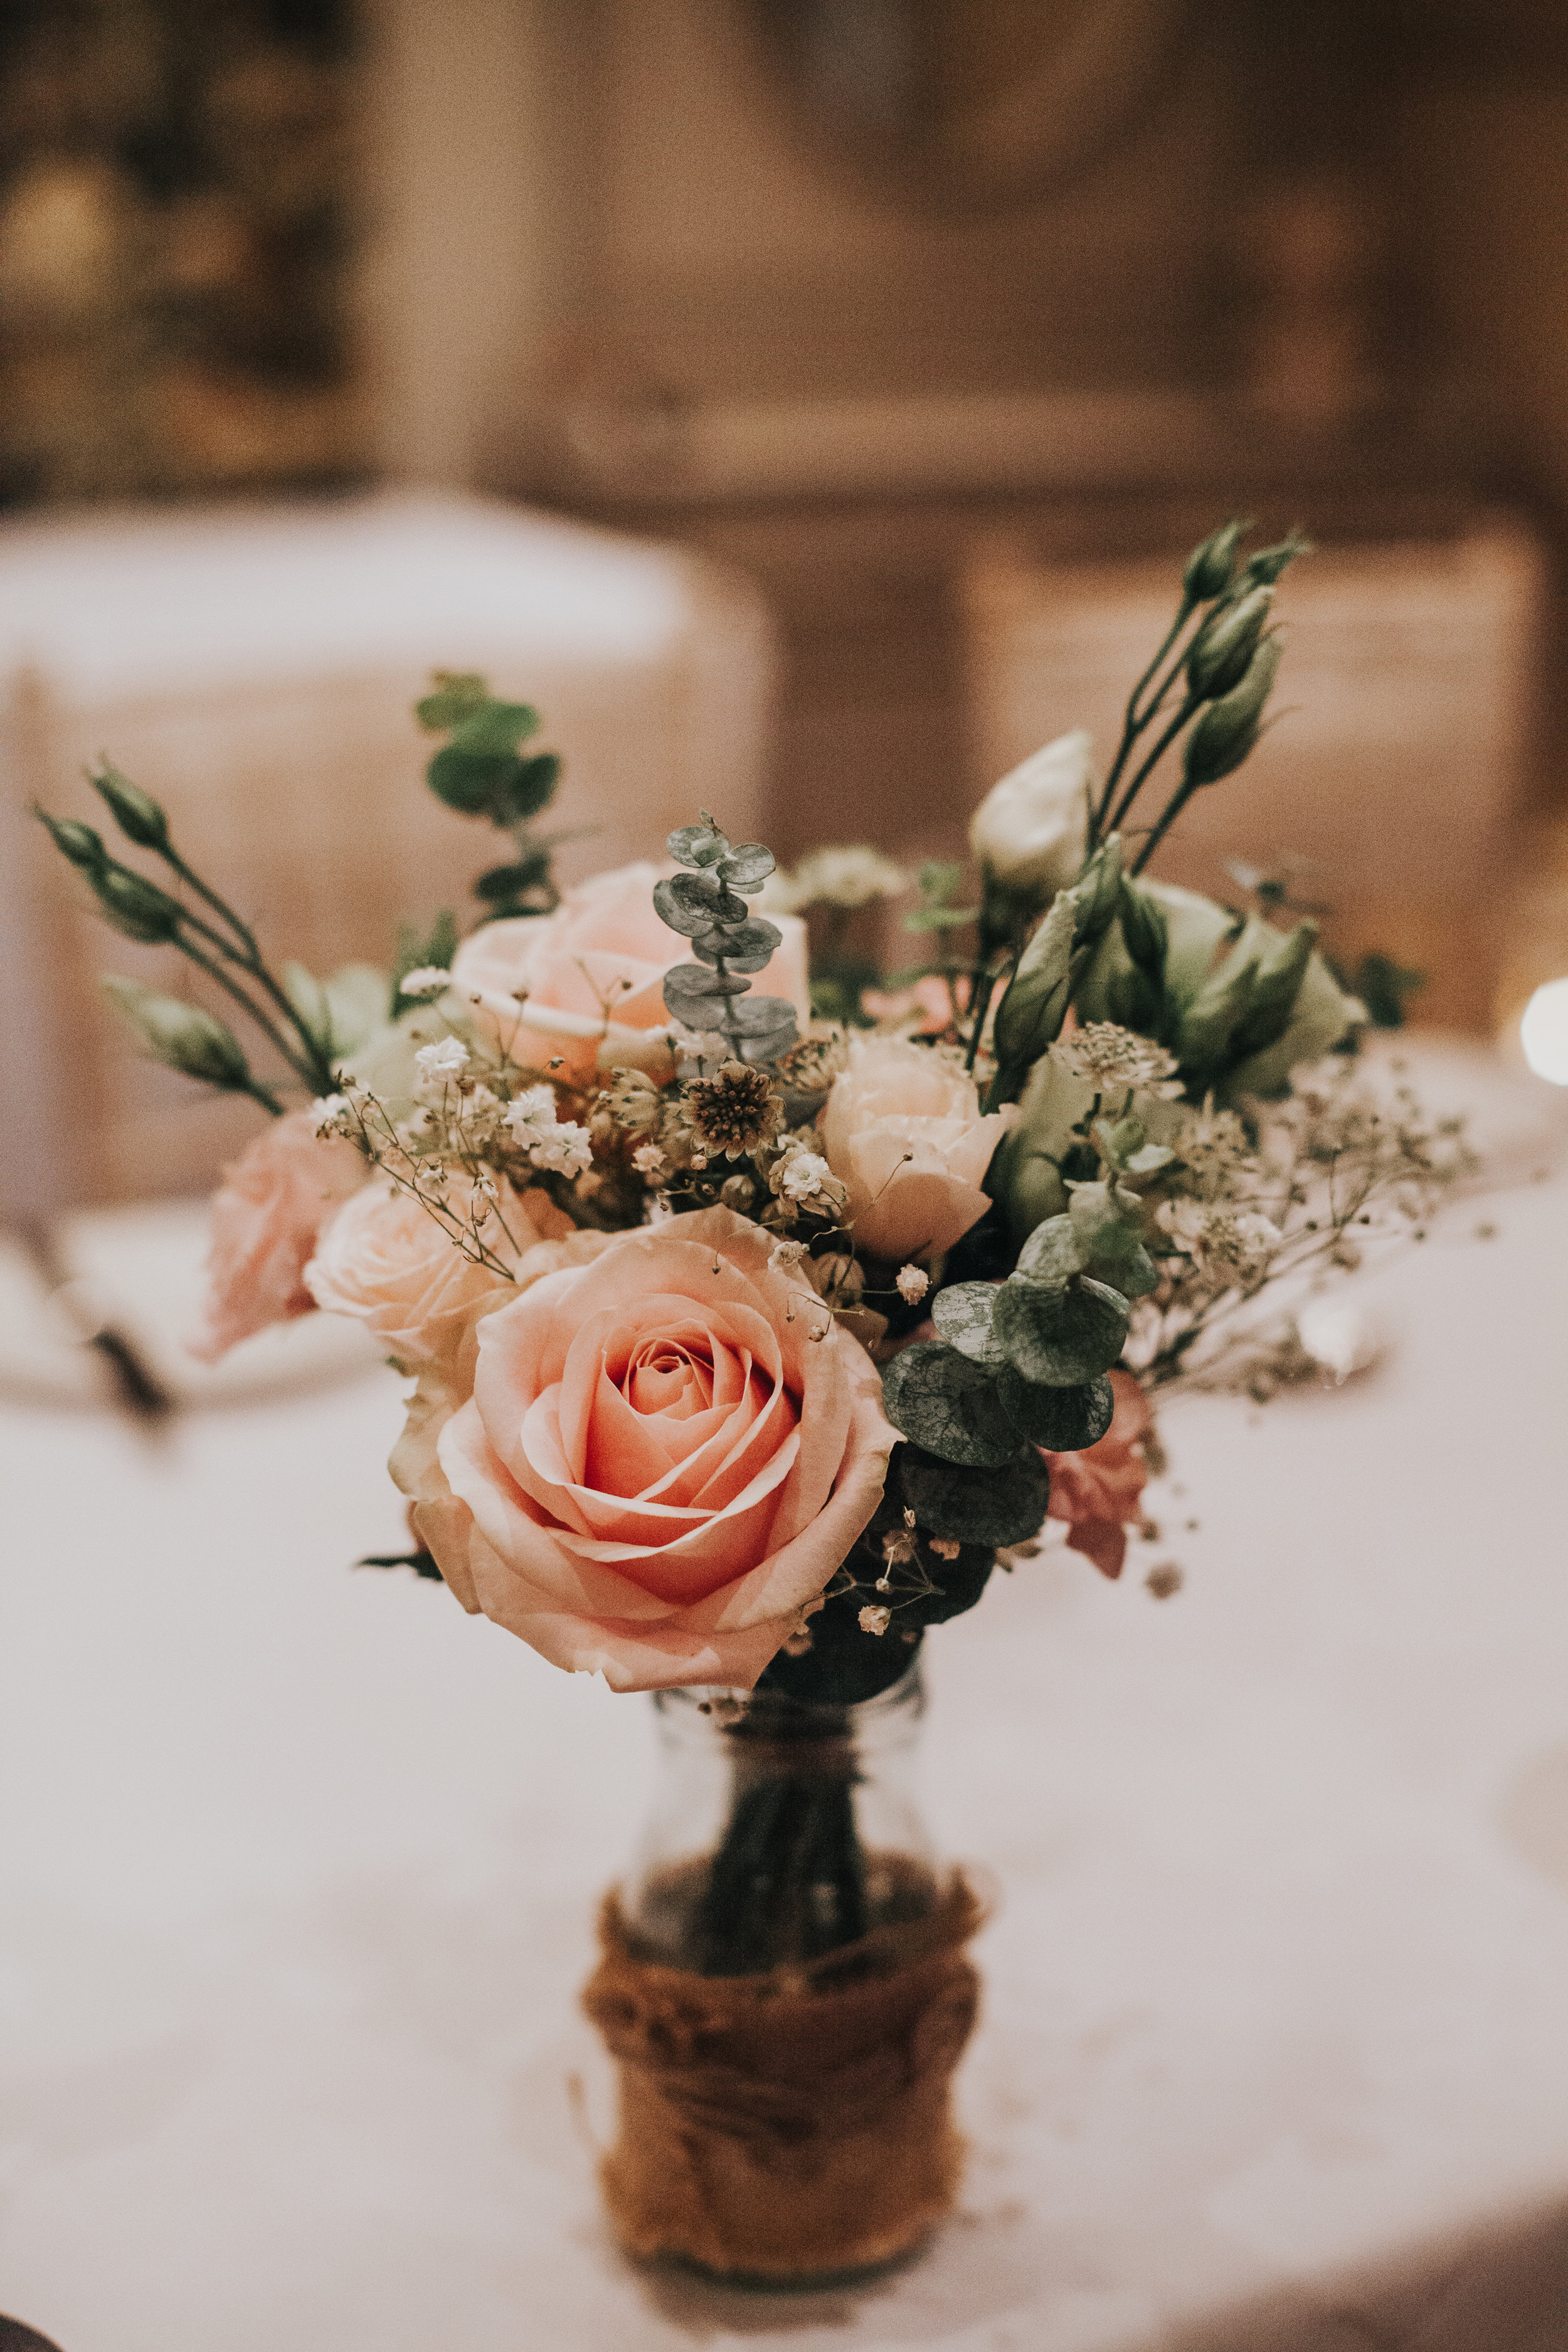 Pink roses and greenery in a jar as a table decoration.